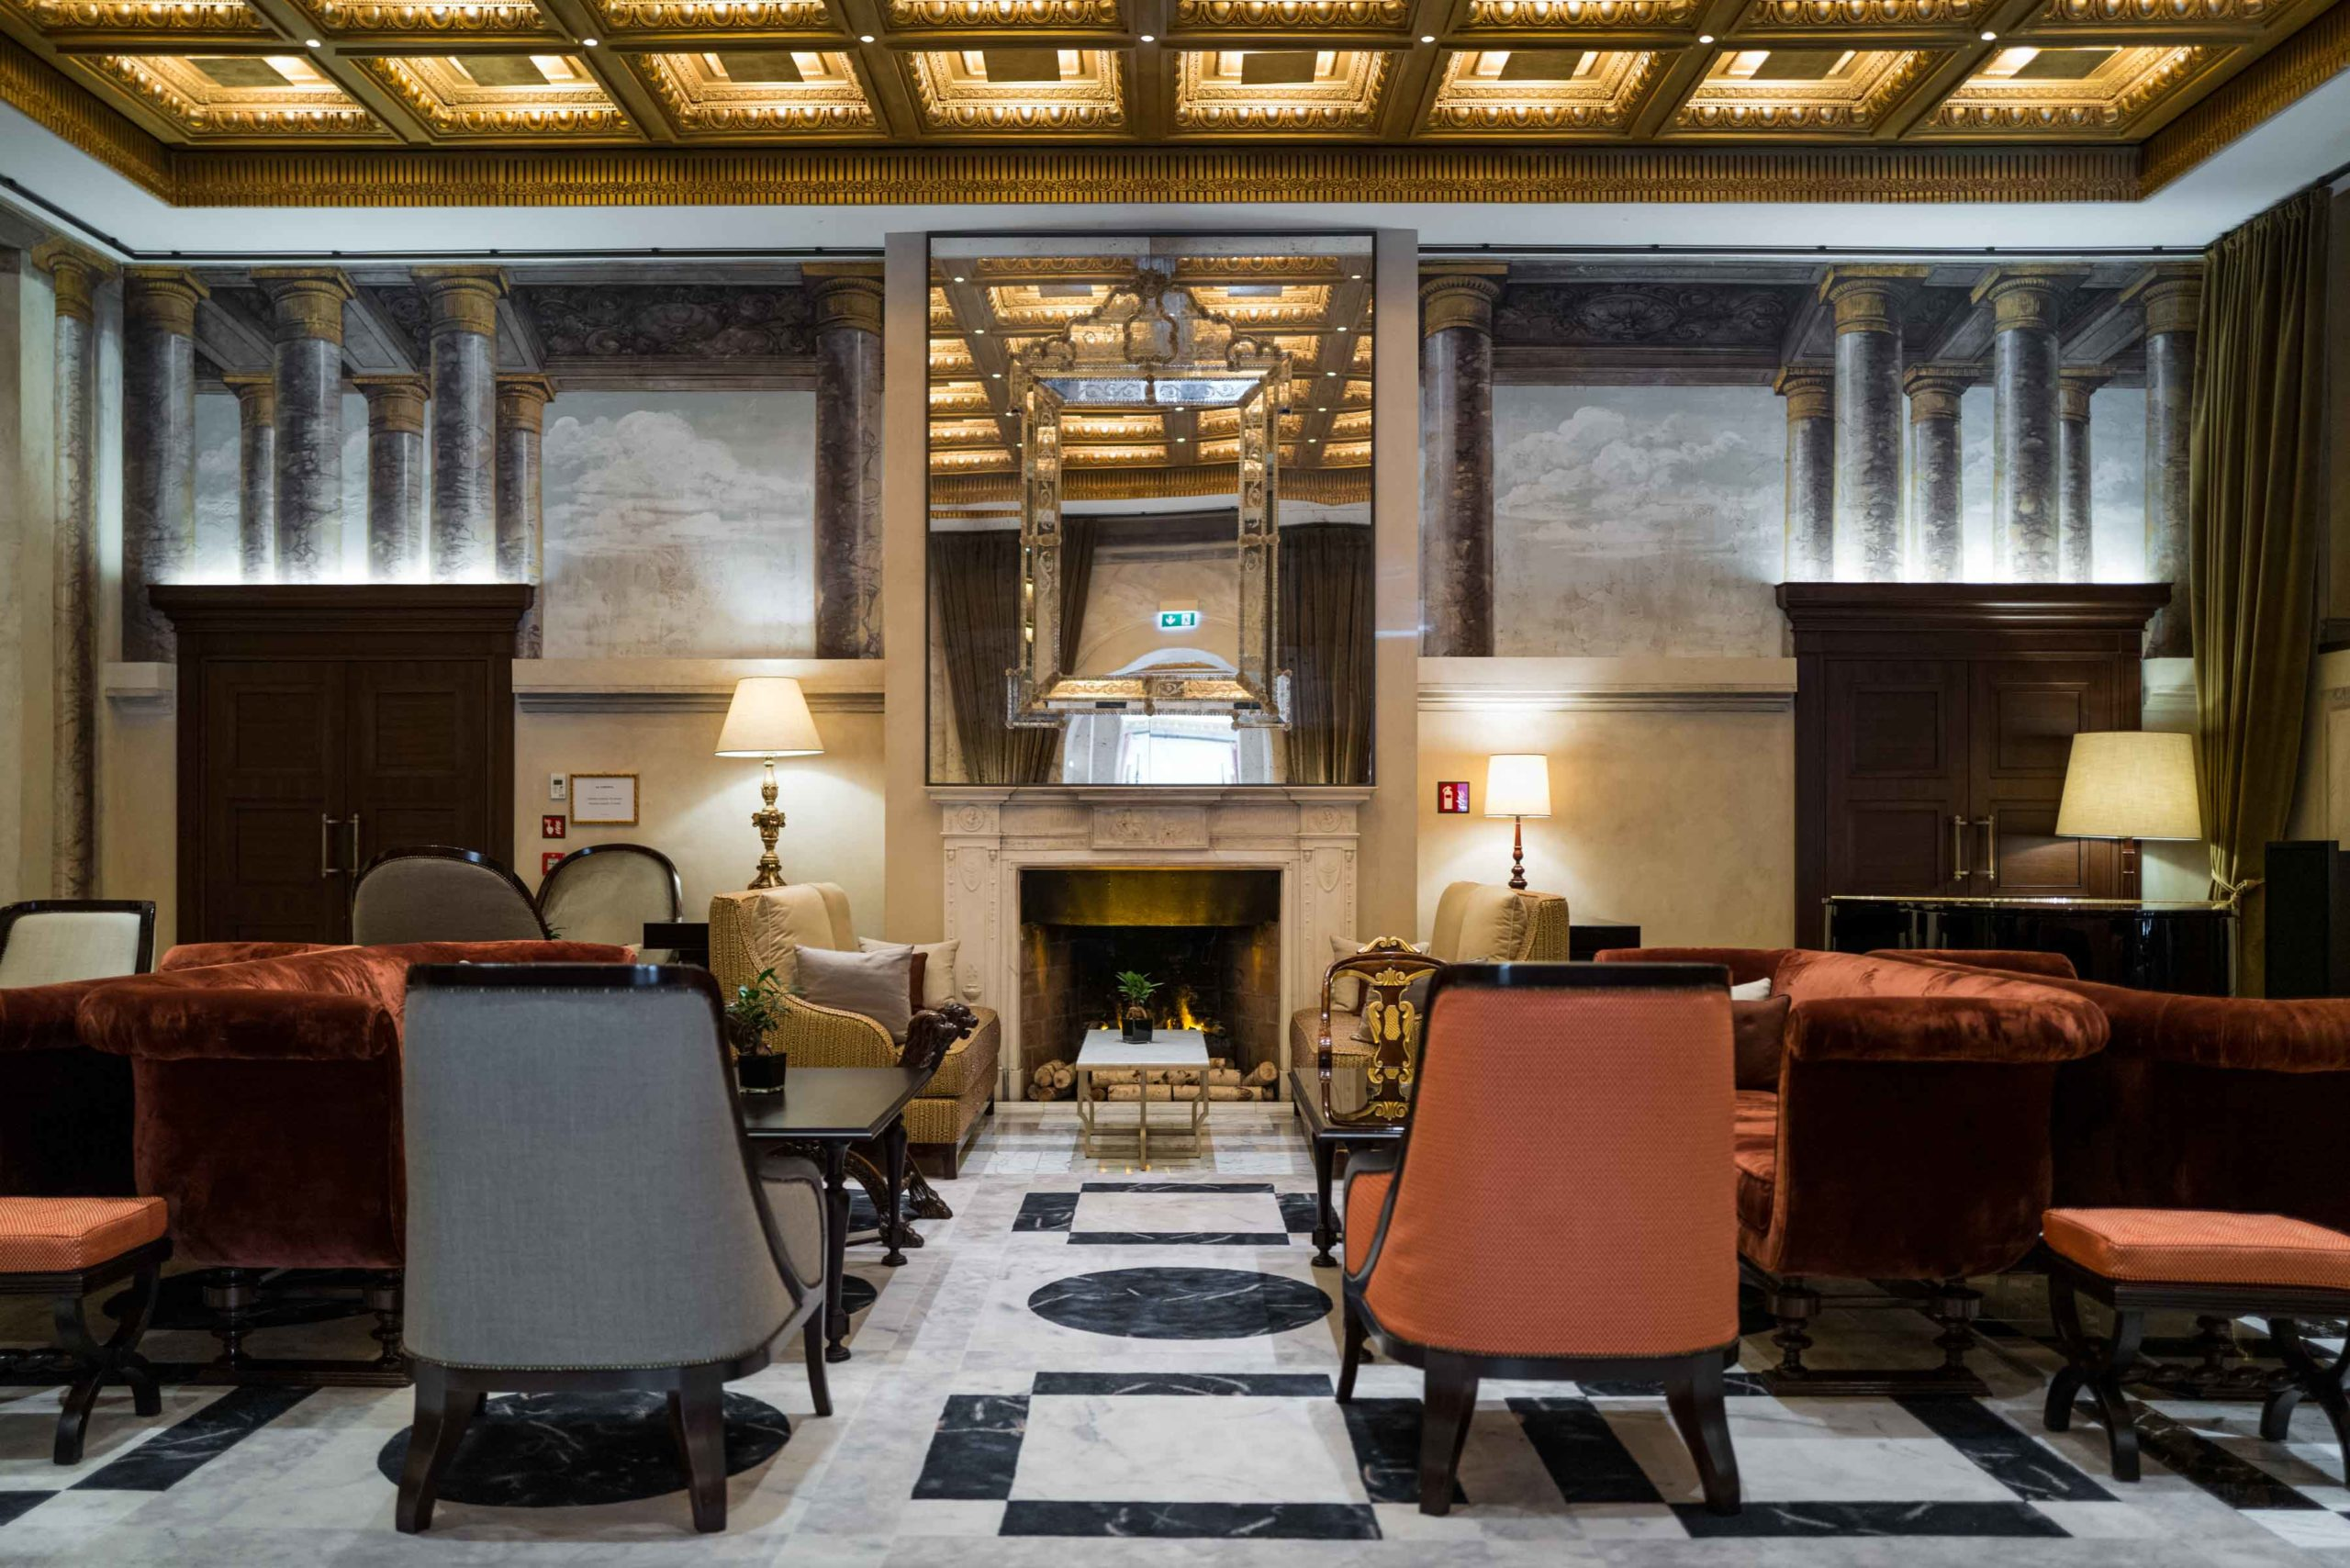 The lobby at the Hotel Eden Rome, The Taste Edit #hotel #rome #italy